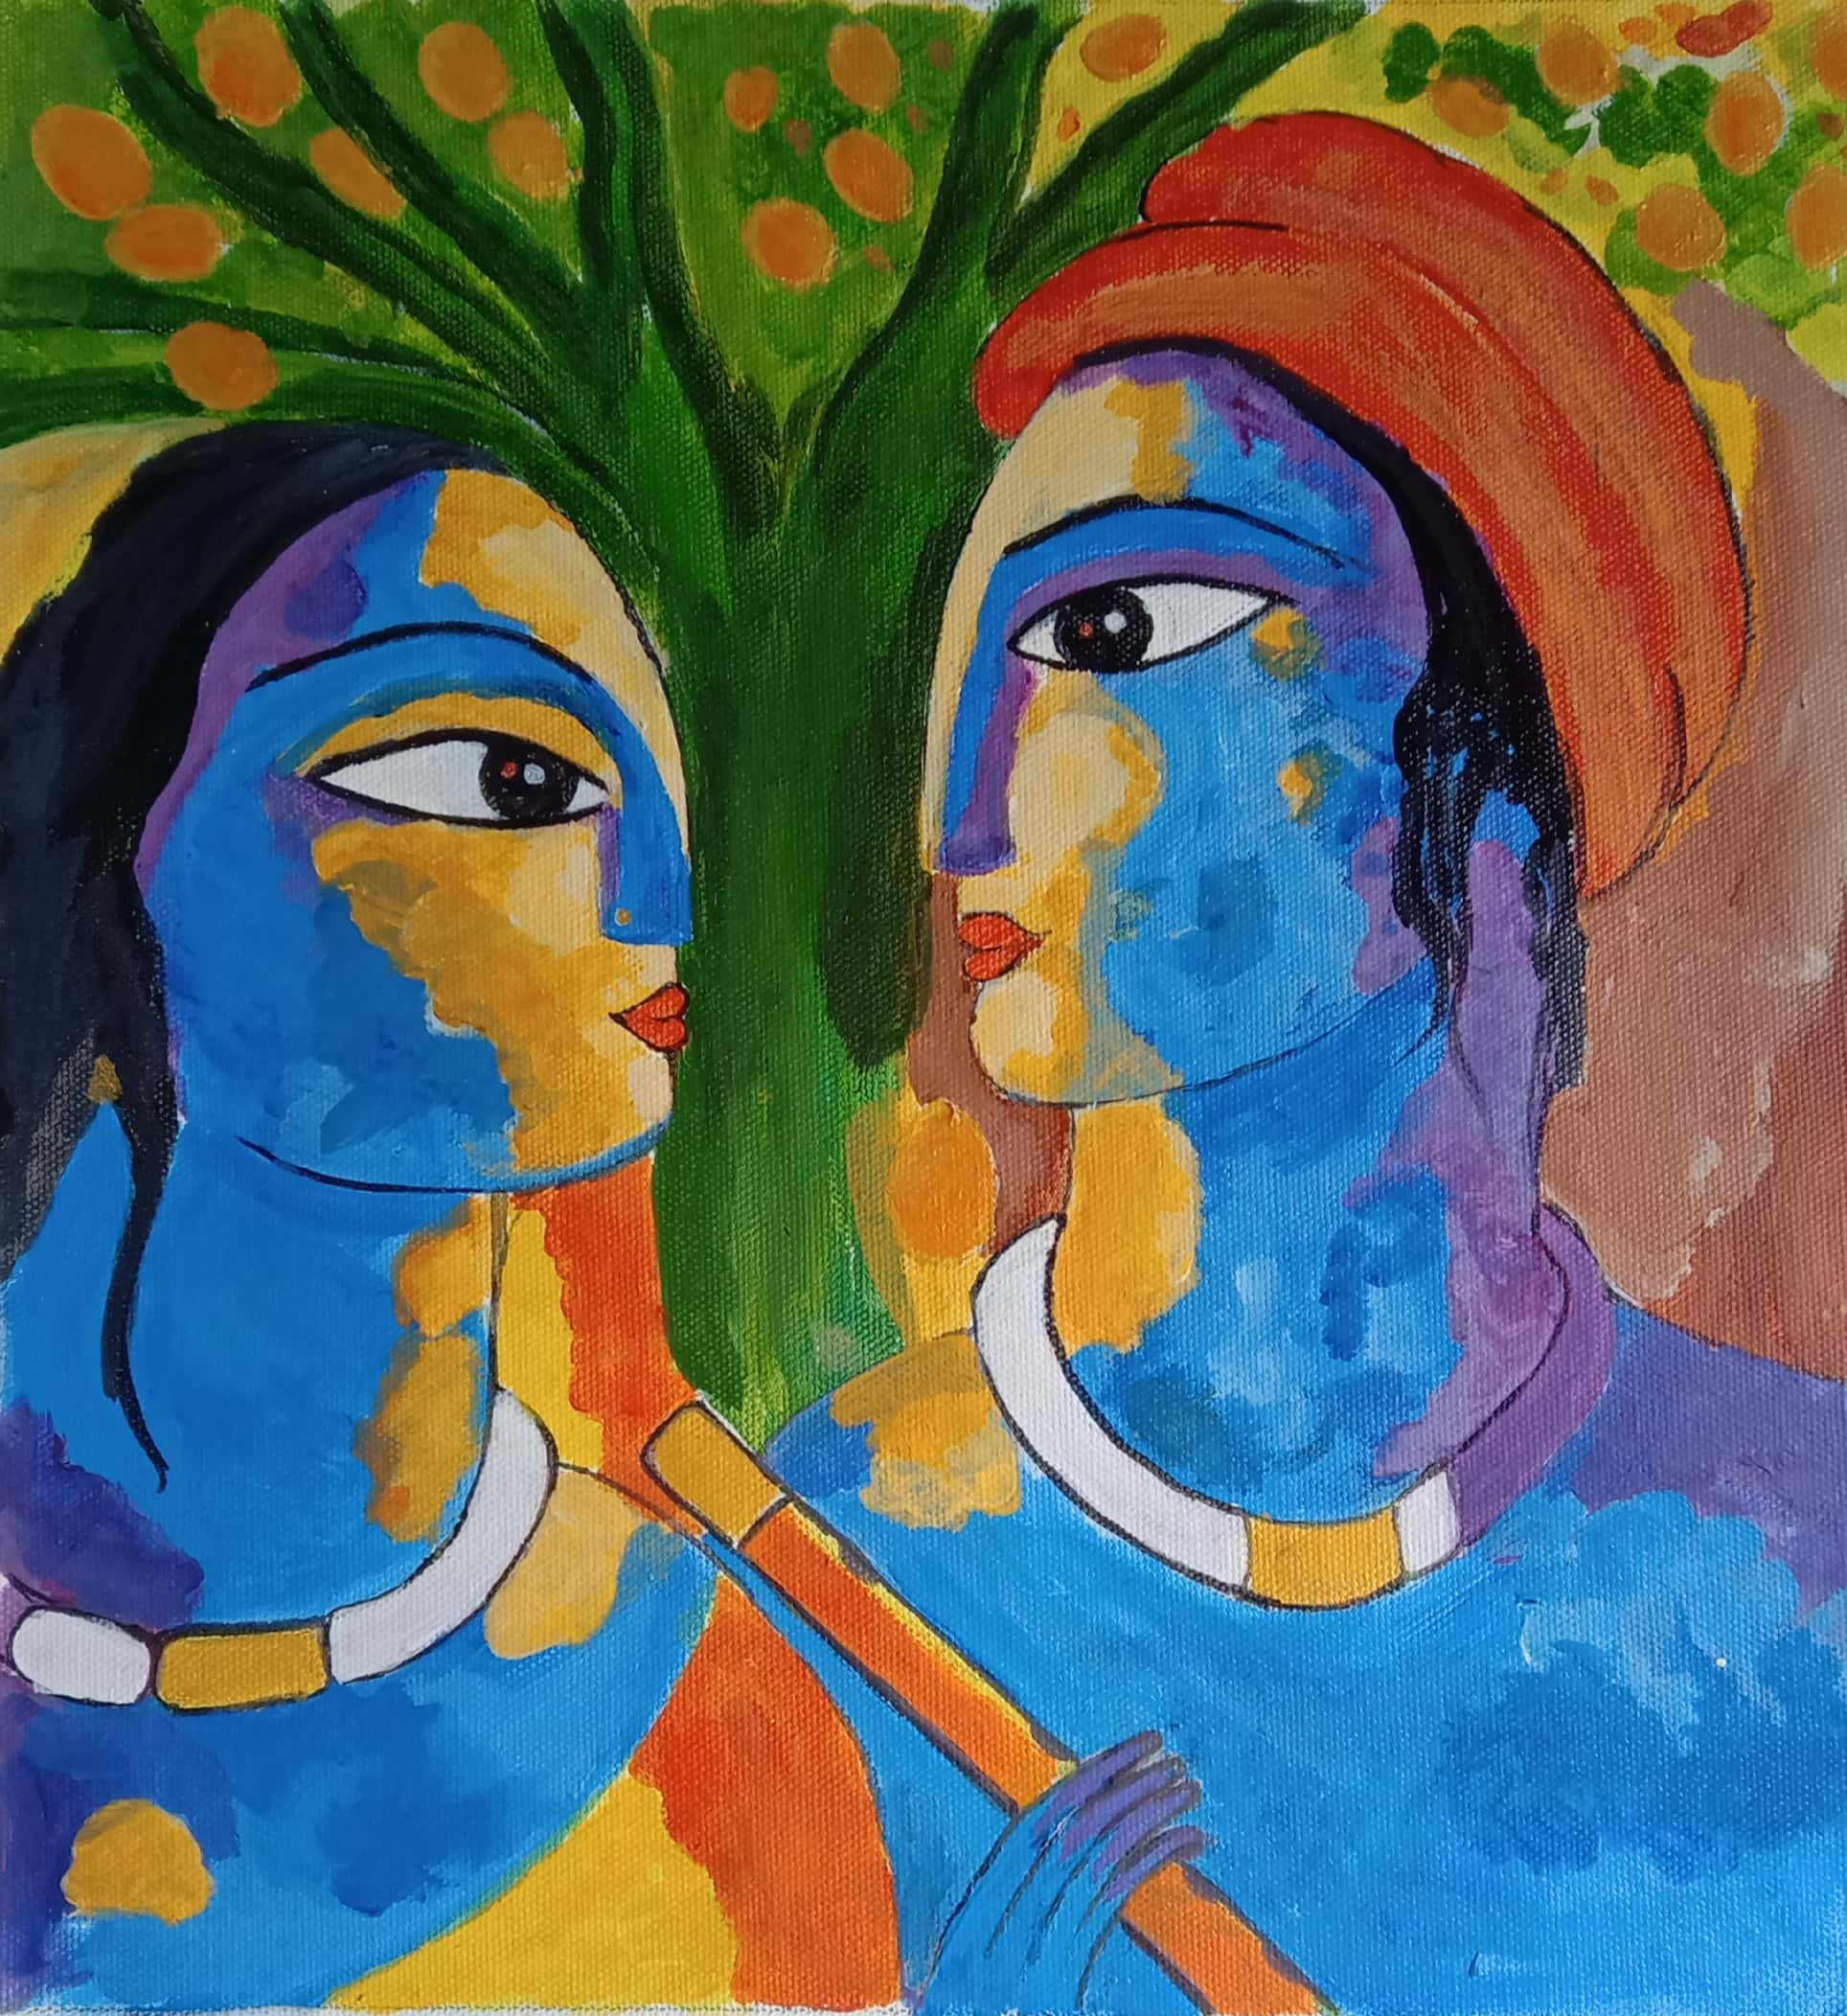 KRISHNA RADHA-paintings Showflipper